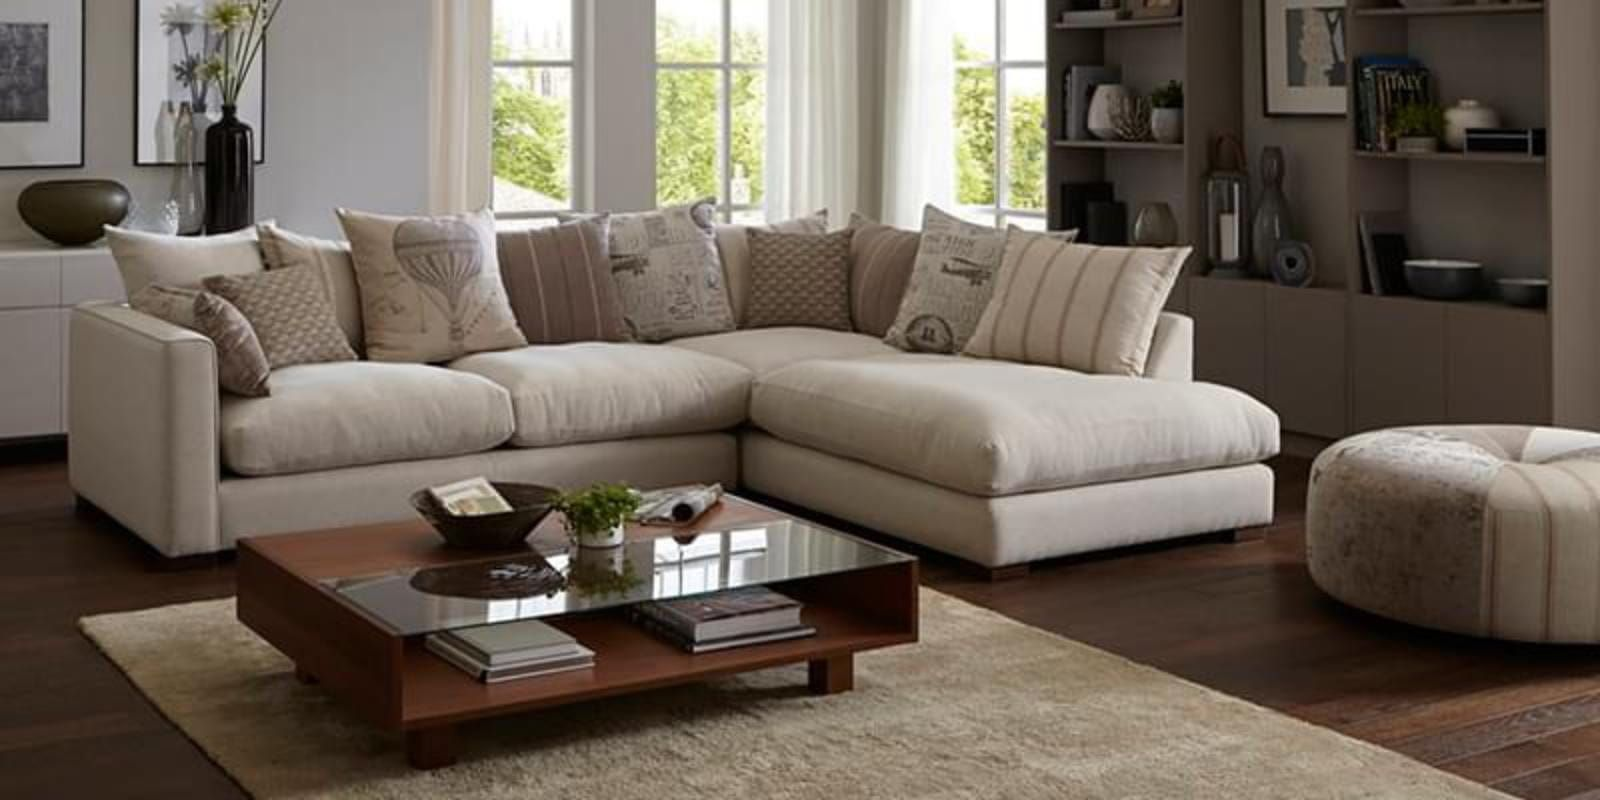 Small Living Room L Shape Sofa Variant Living In 2020 Corner Sofa Design Living Room Sofa Design Sofa Design